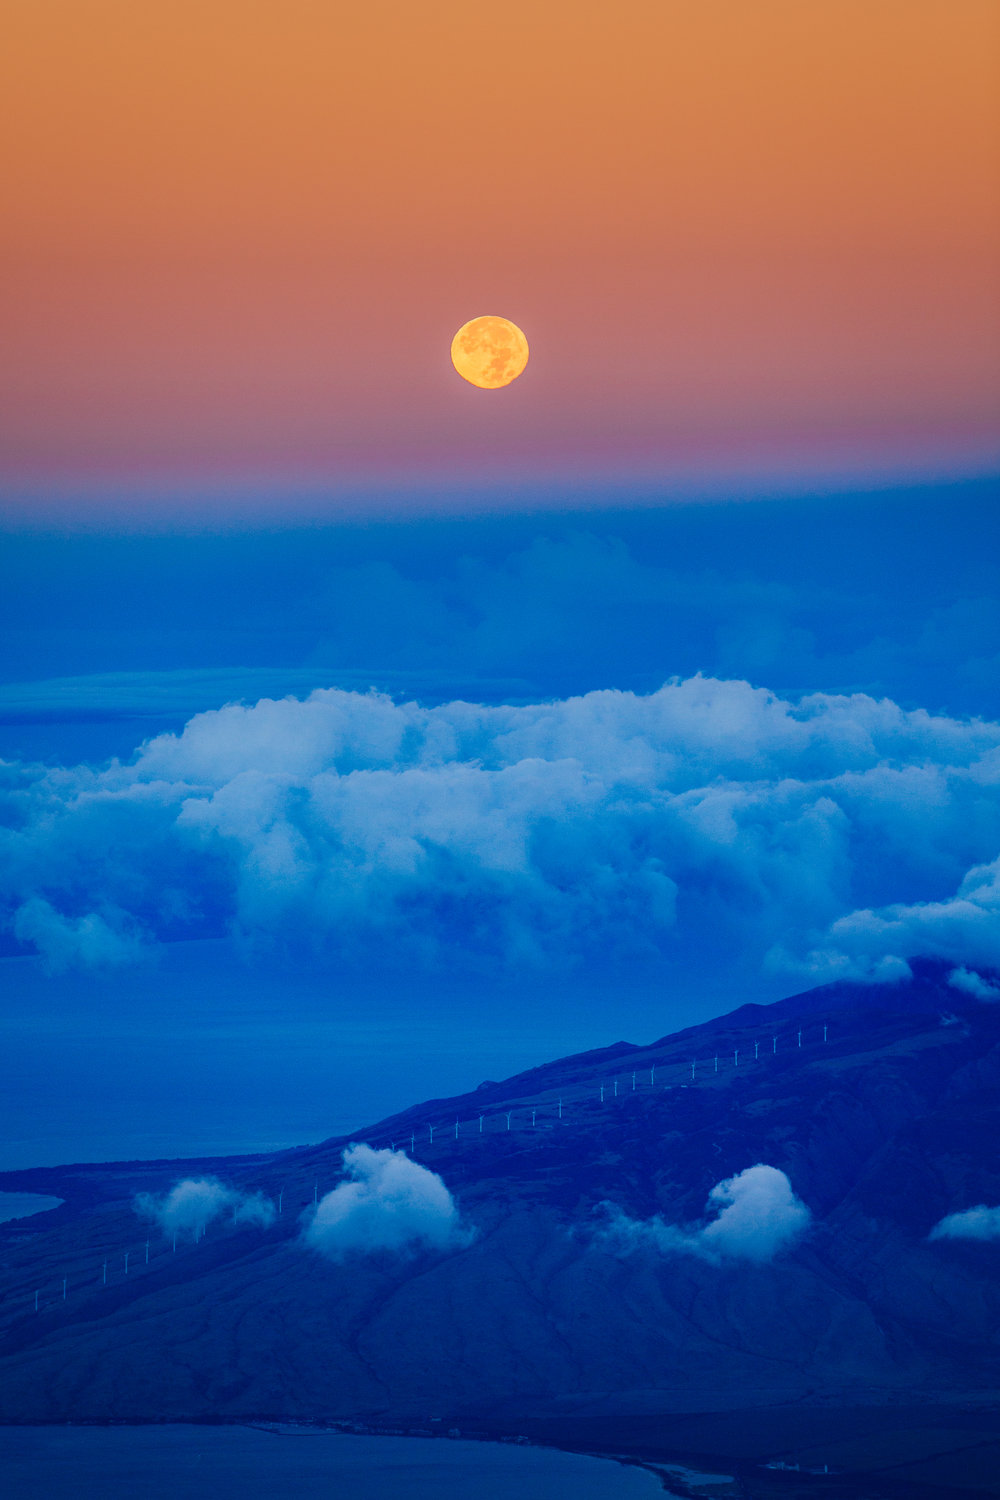 Explore Deeply : What Can We Learn About Receiving from the Full Moon & Sufis